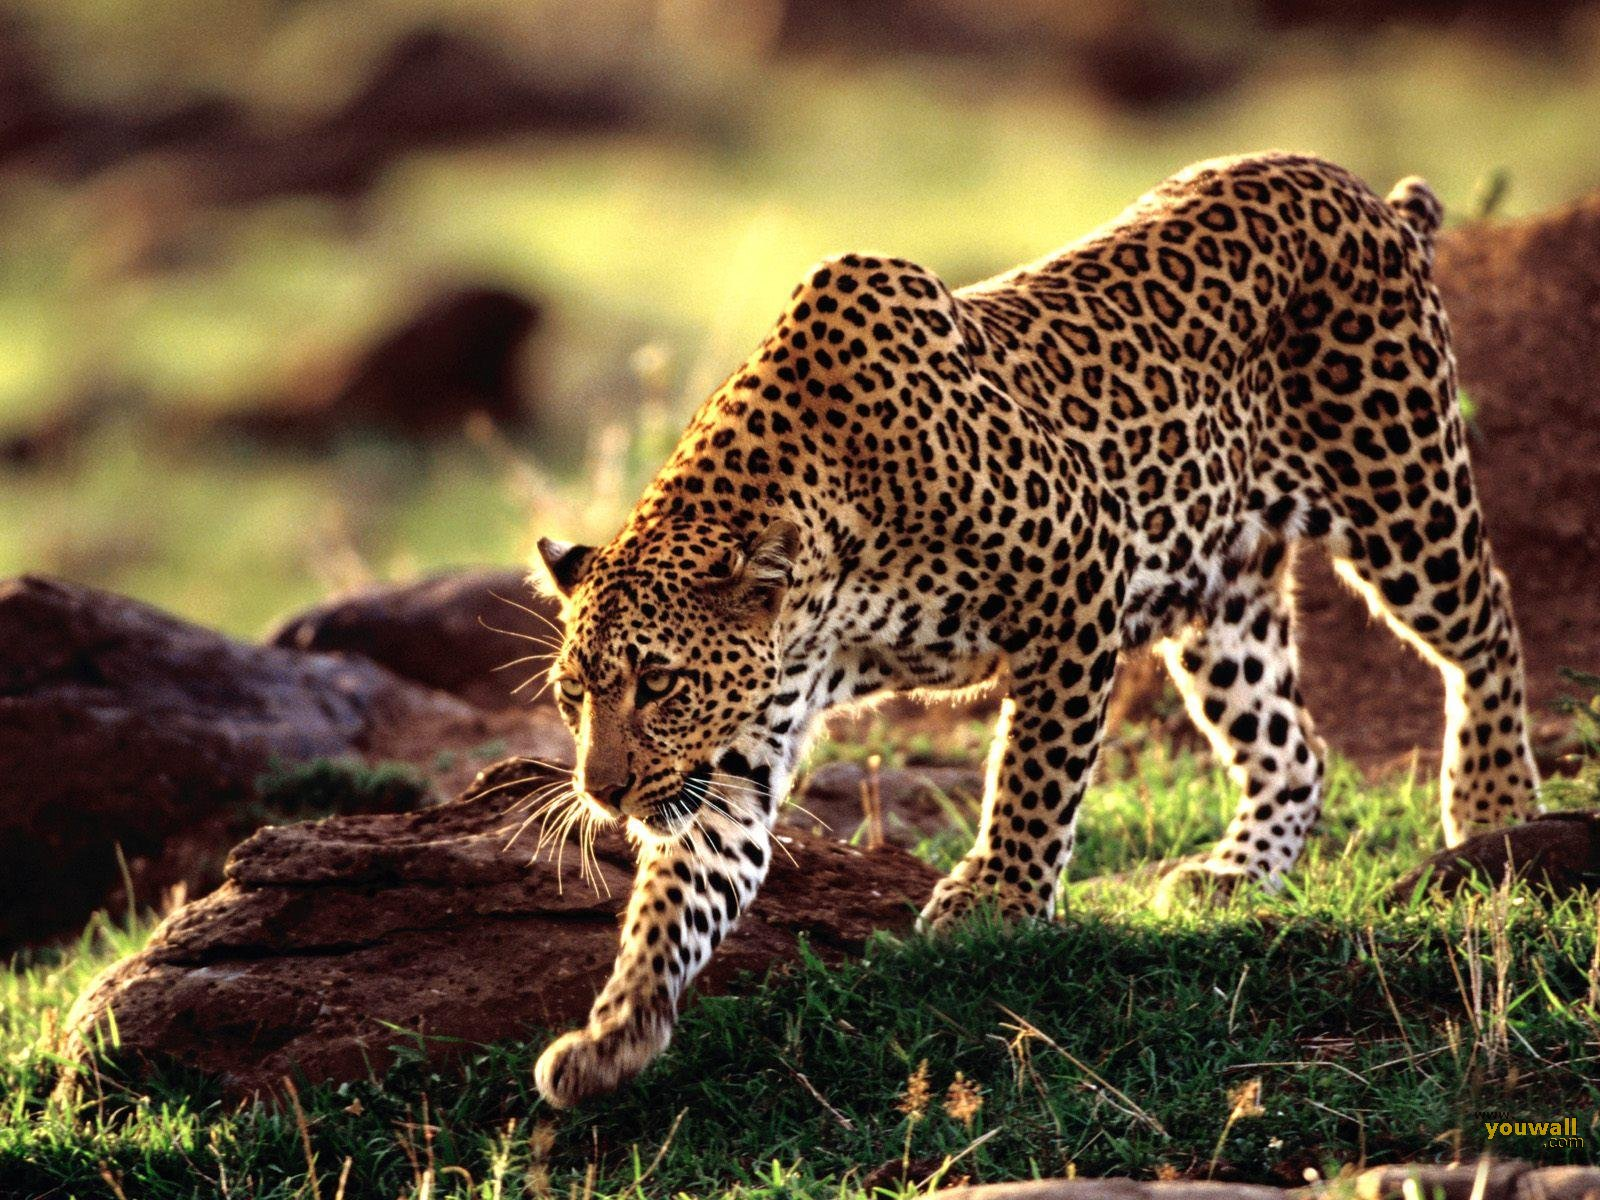 HD Wallpapers Of Wild Animals